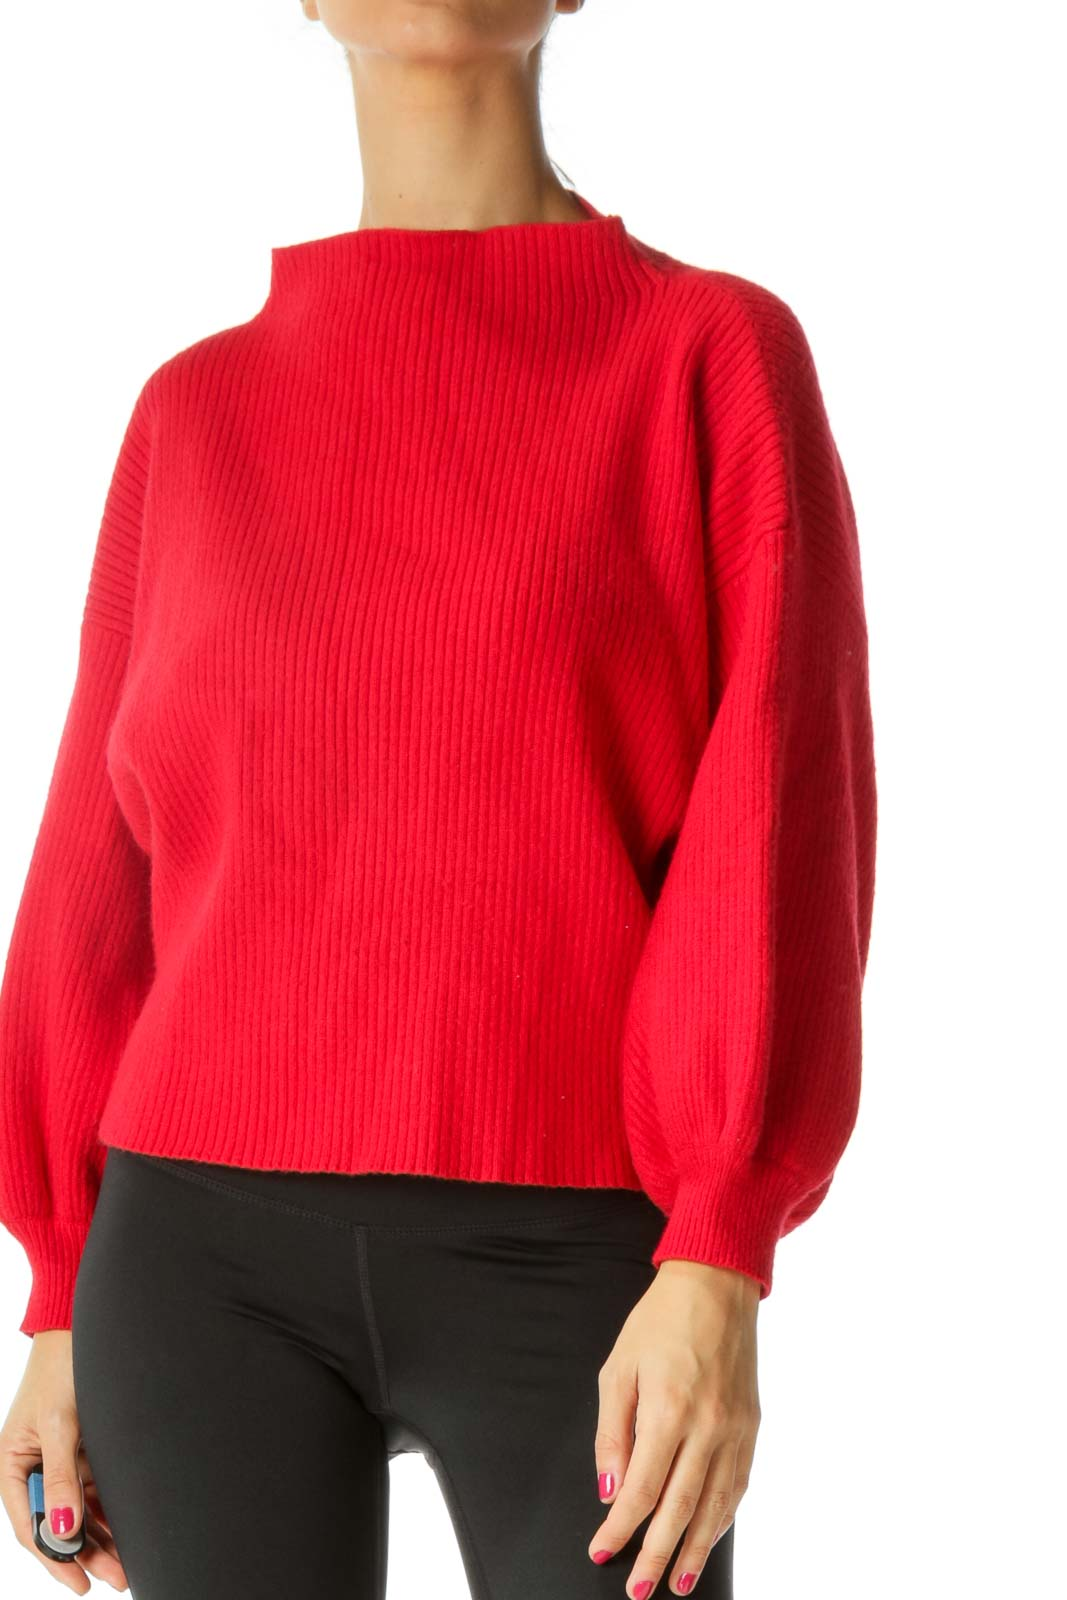 Red Mock Neck Sweater Front